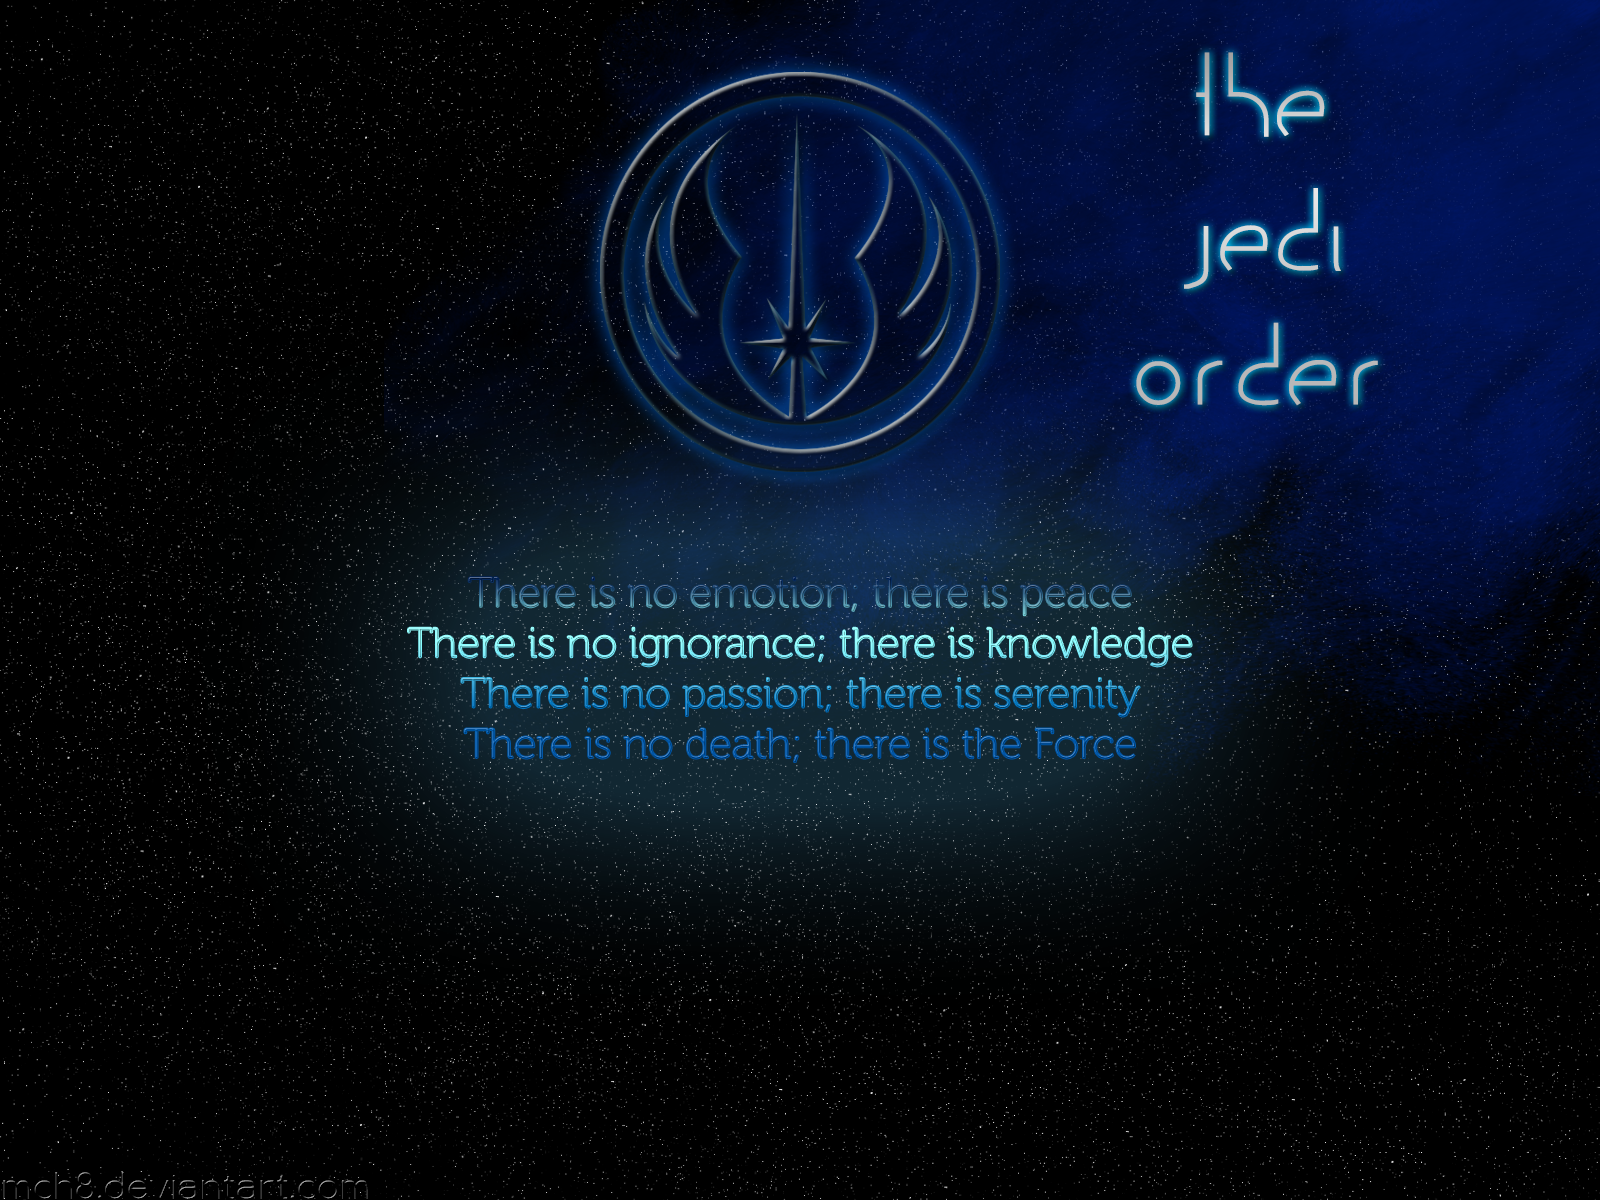 Jedi Order Logo Wallpaper The jedi order by mch8 1600x1200